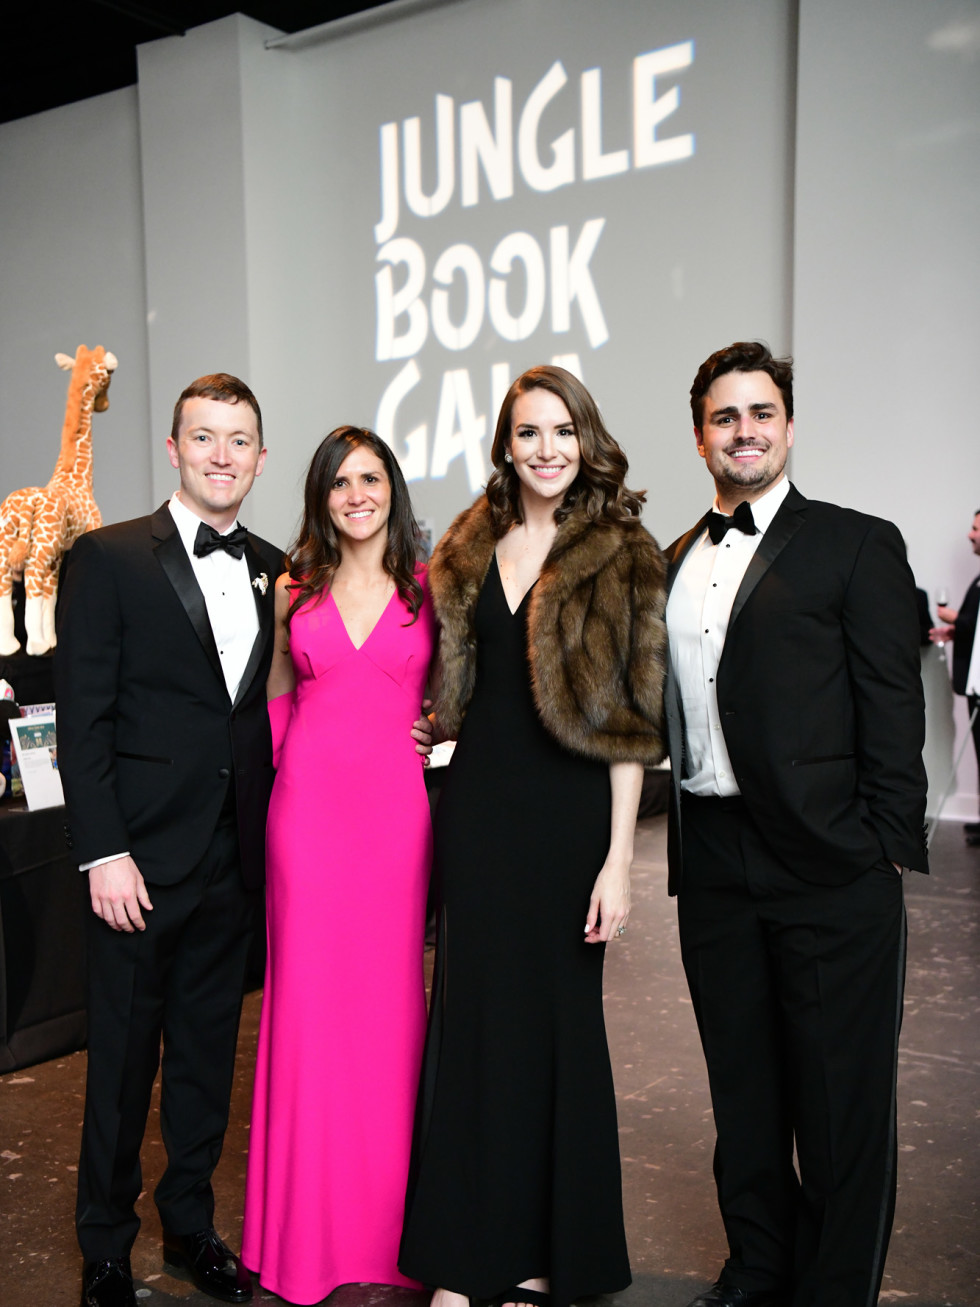 Jungle Book Gala 2019 Nick Carnrite and Kasey McNorton with Lauren and Lawson Gow